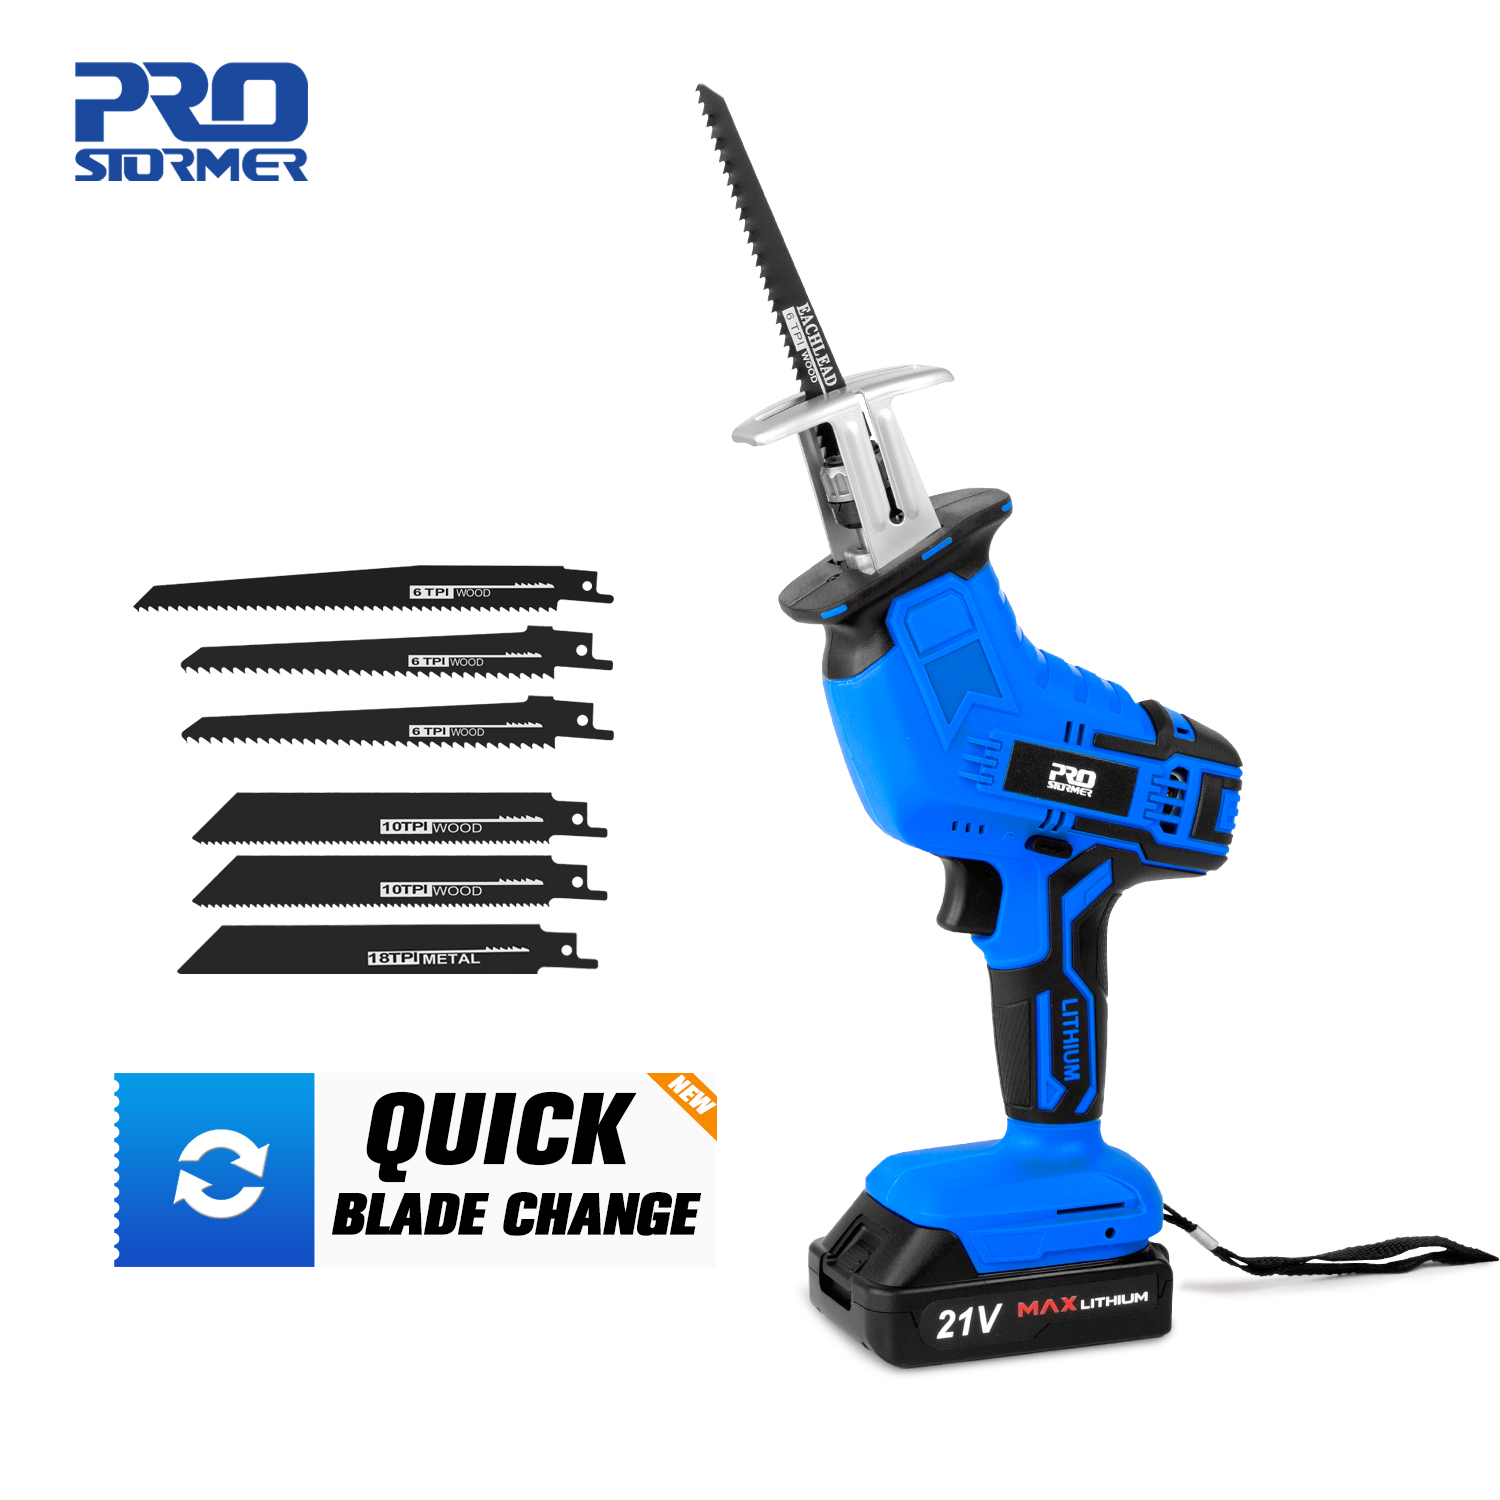 Reciprocating Saw 21V Cordless Wood Metal PVC Pipe Cutting DIY Chain Saw Power Tool by PROSTORMER